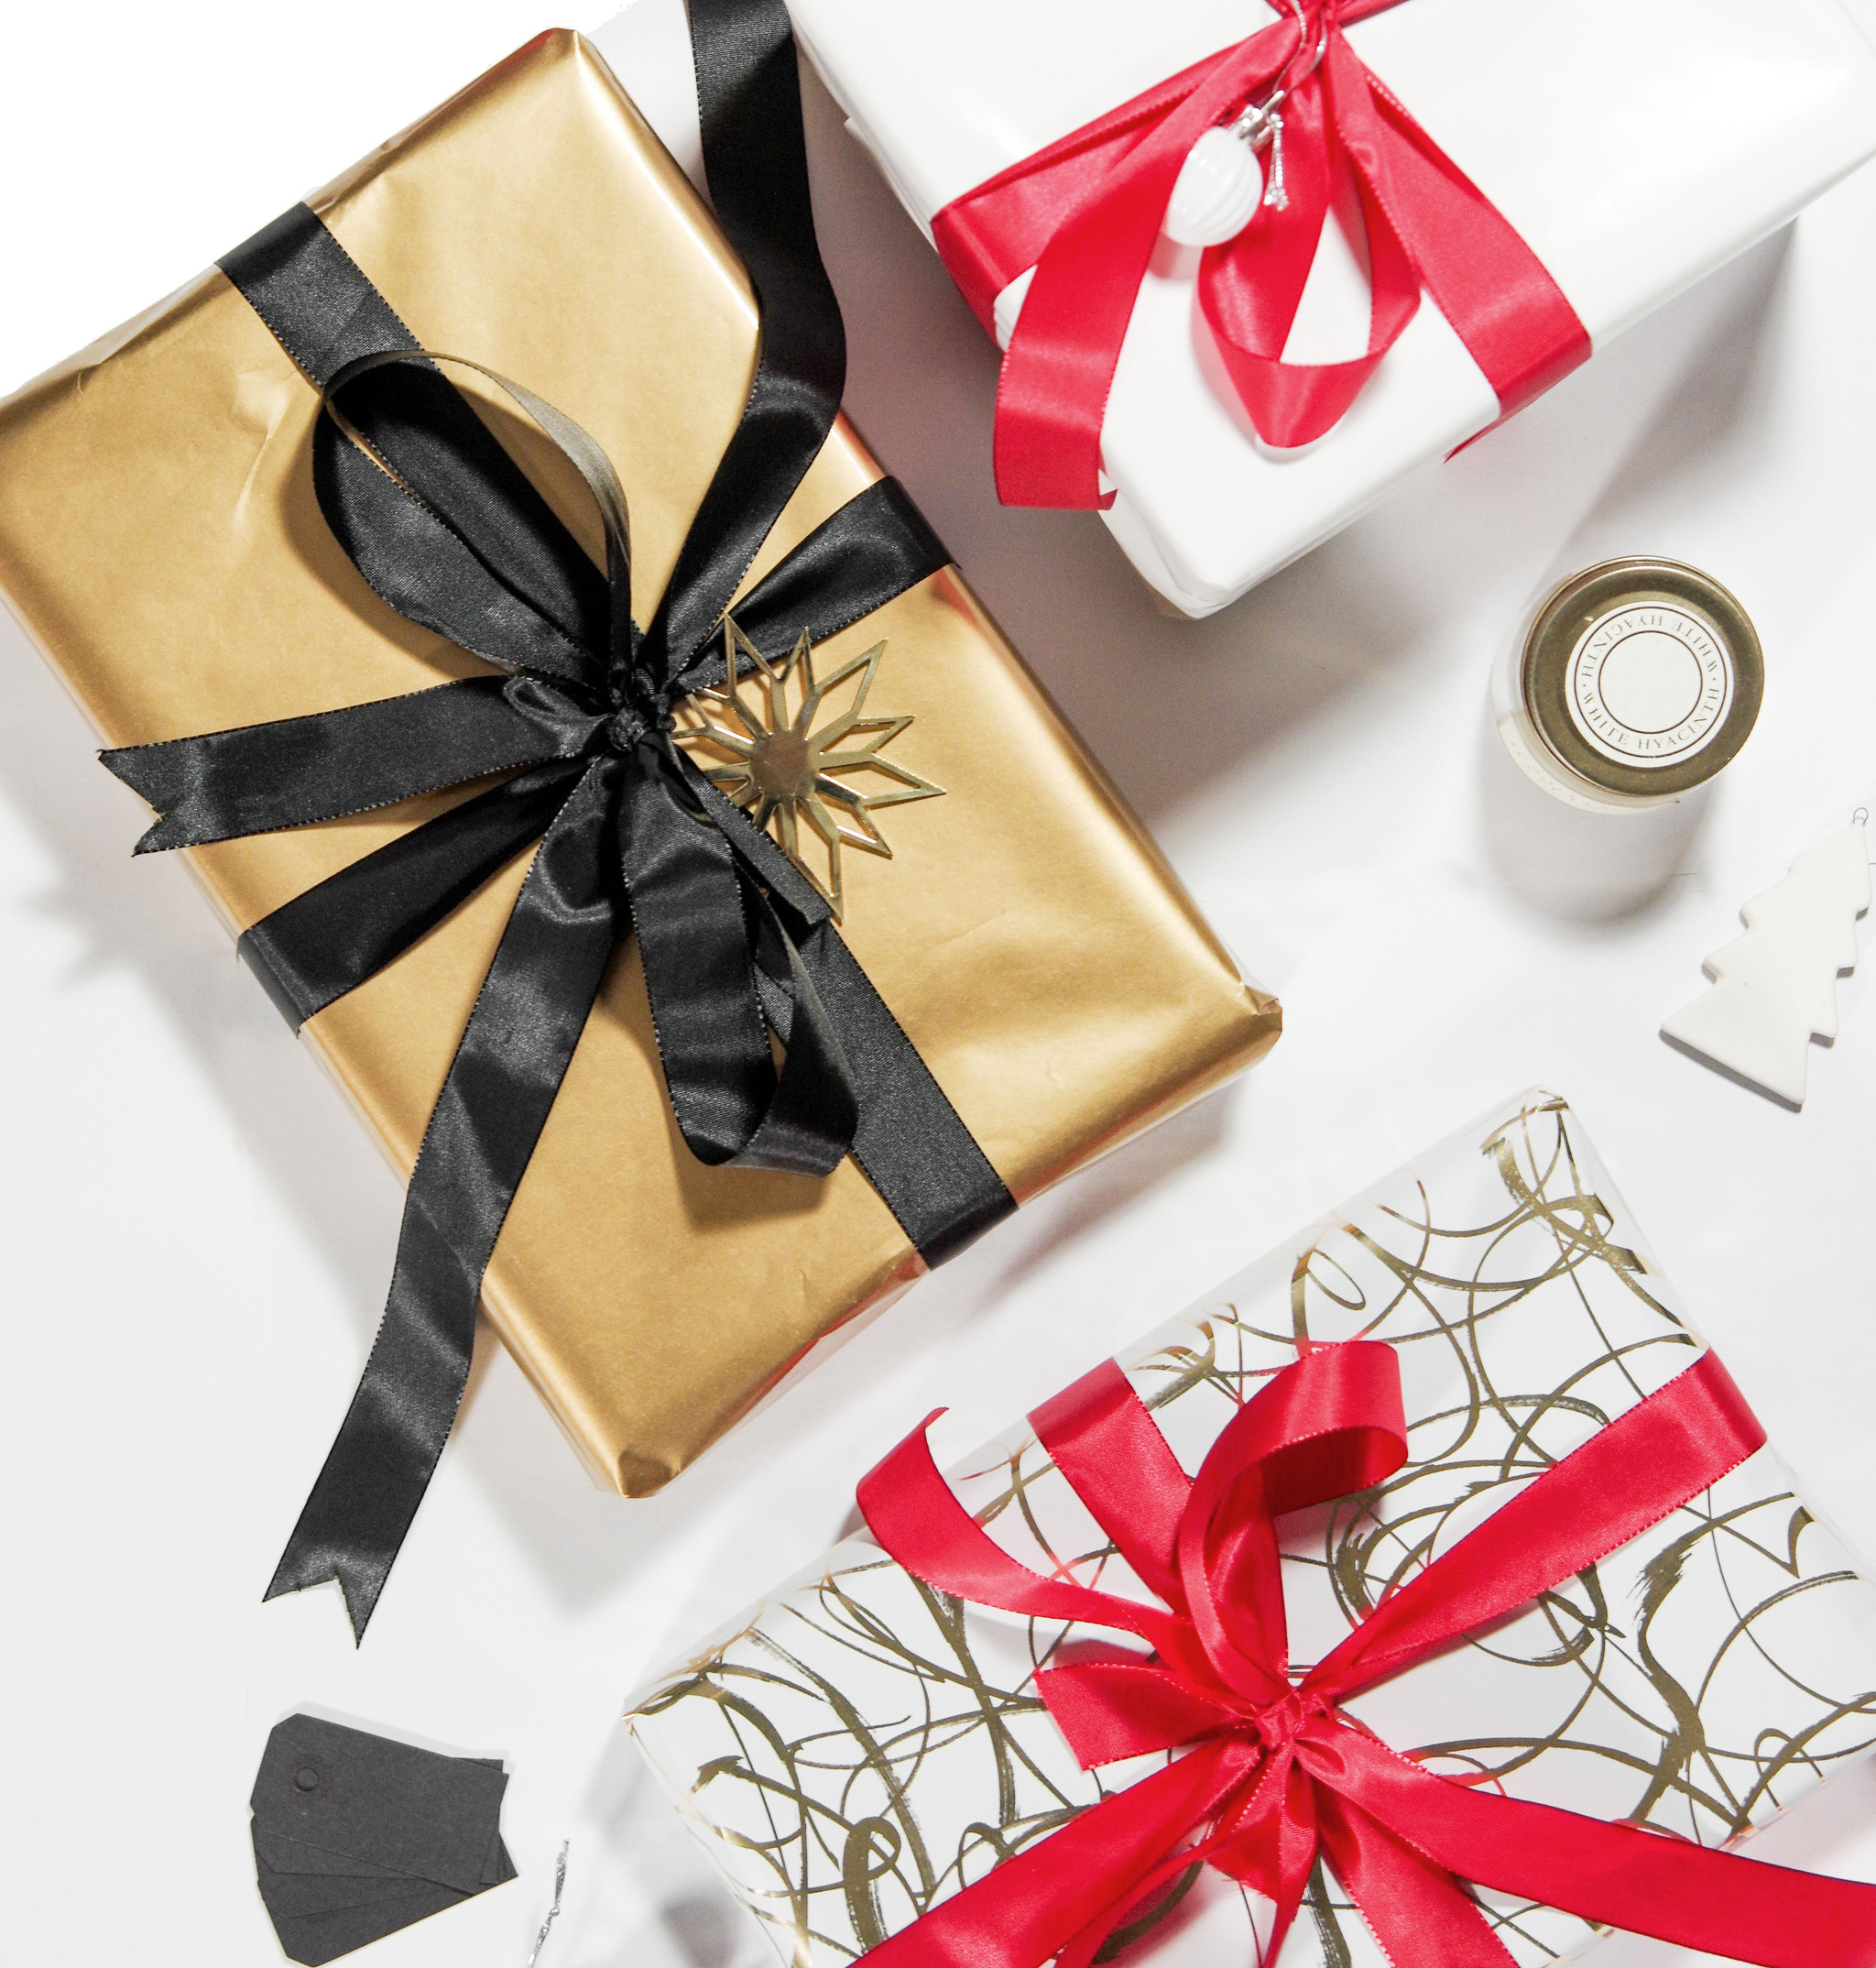 Gifts For Architects The Ultimate Guide: The Ultimate Gift Guide For Her